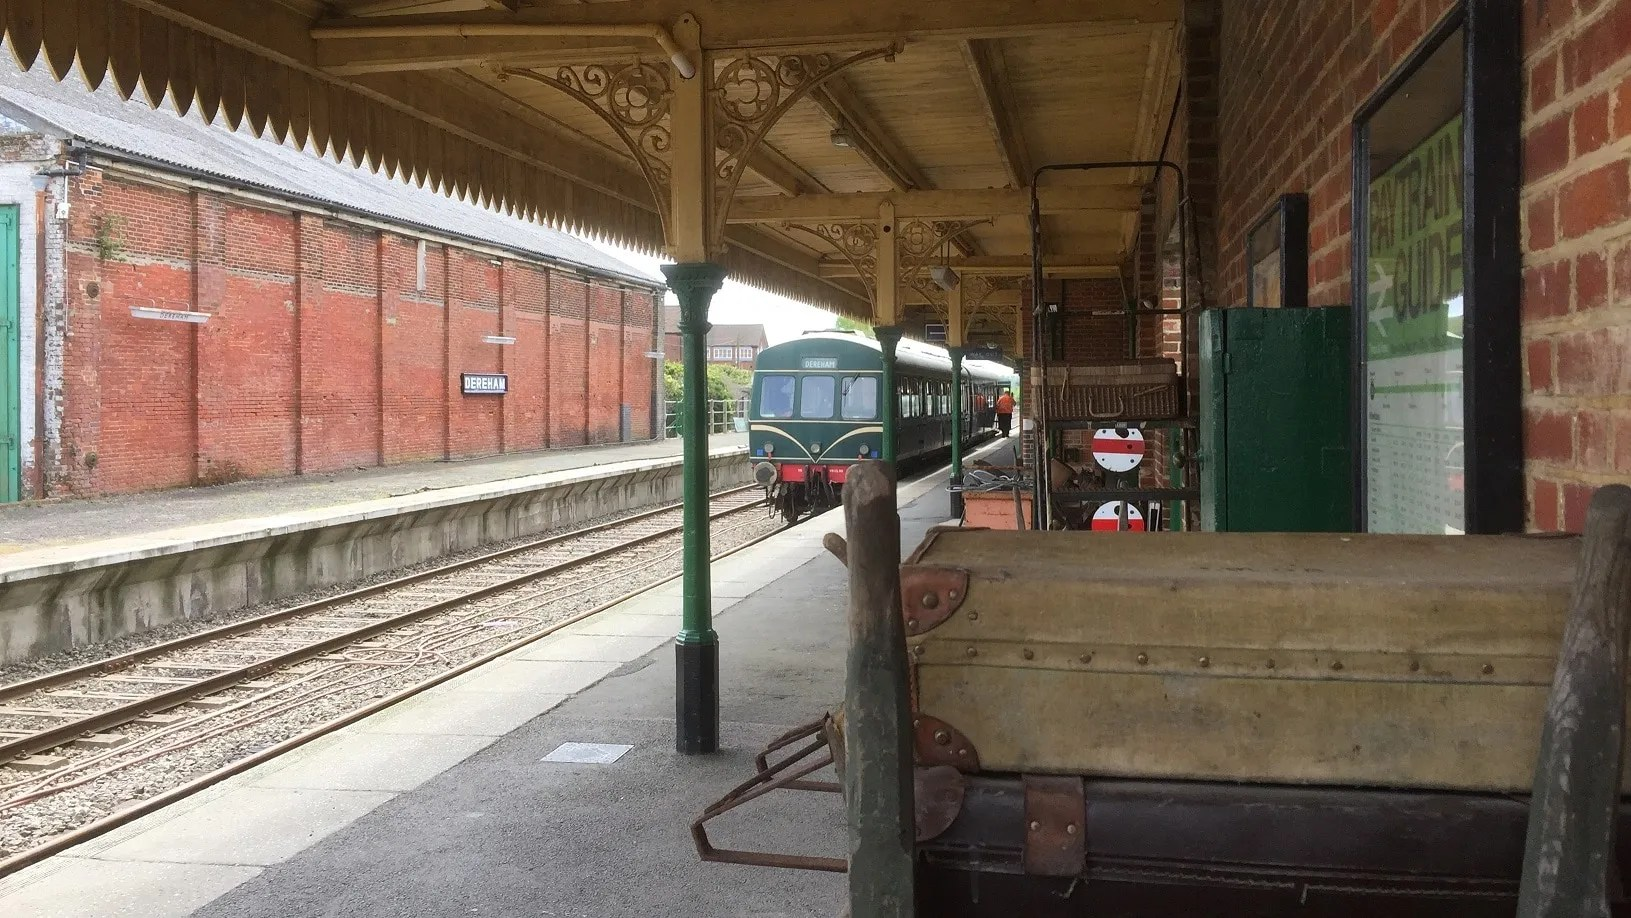 Dereham Station with many of its period features that capture the days of the 1950's and 60's rail travel